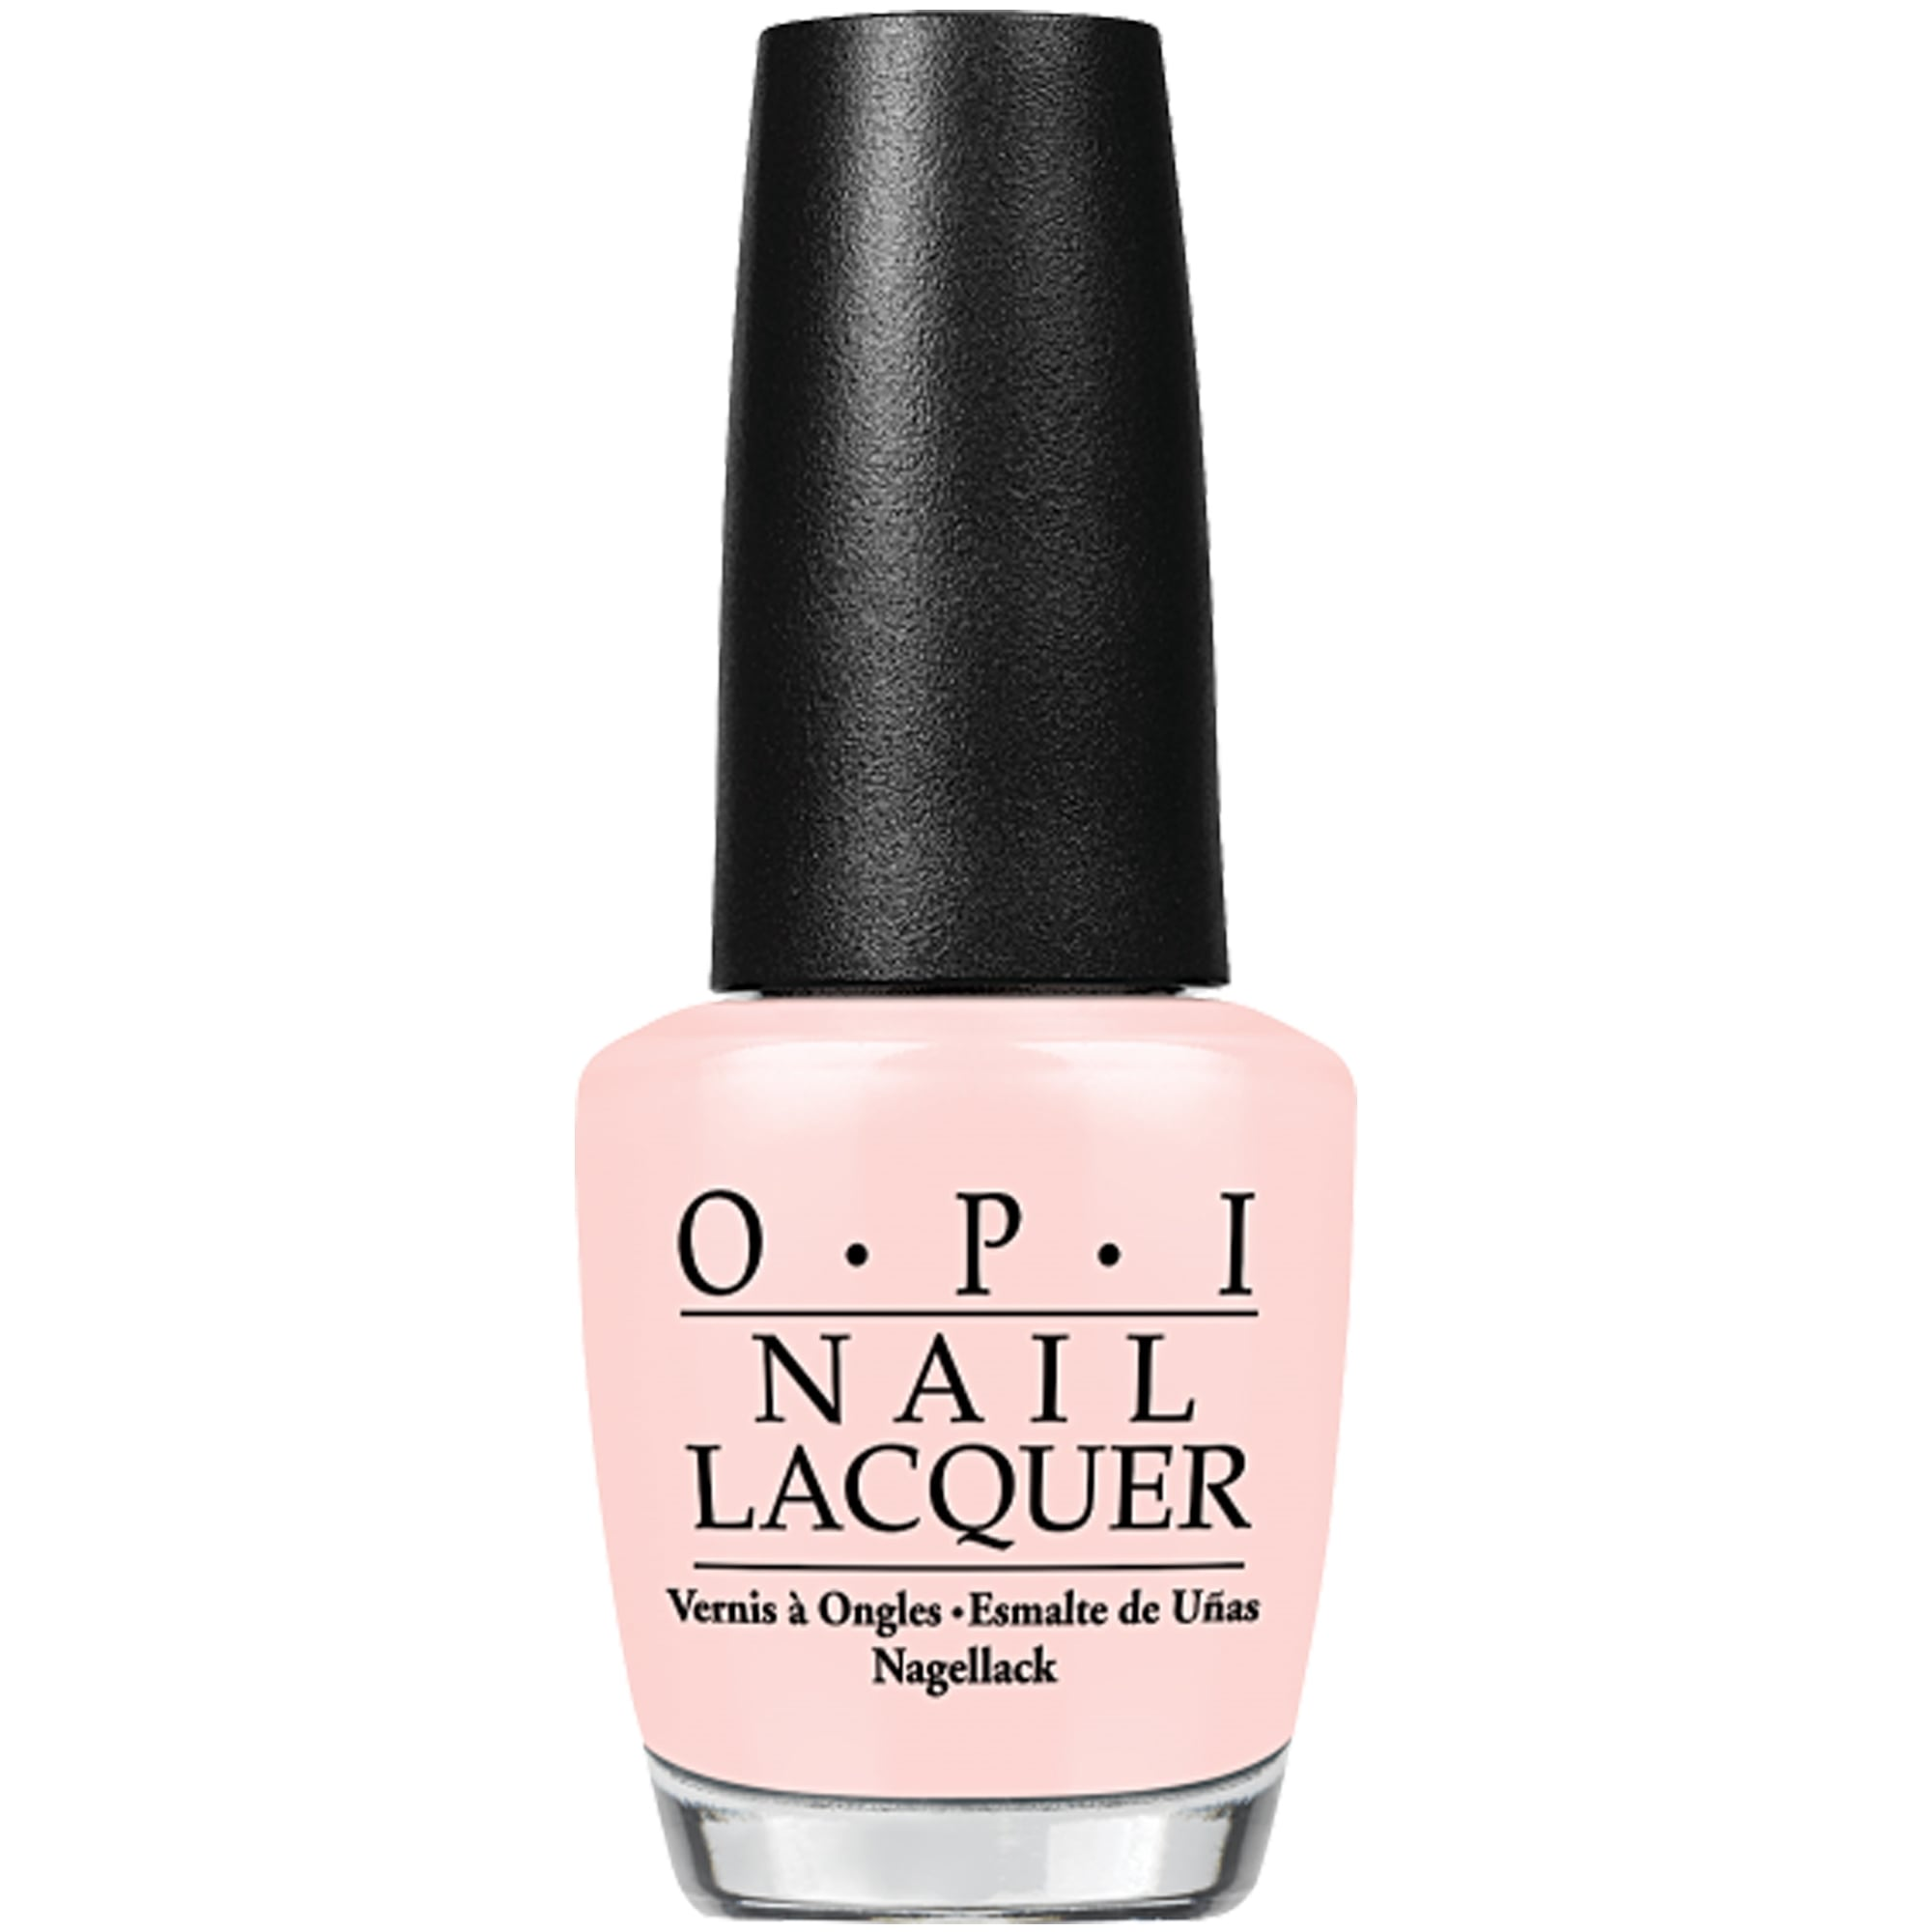 Best Light Pink Nail Polish Colors For A Classic Look